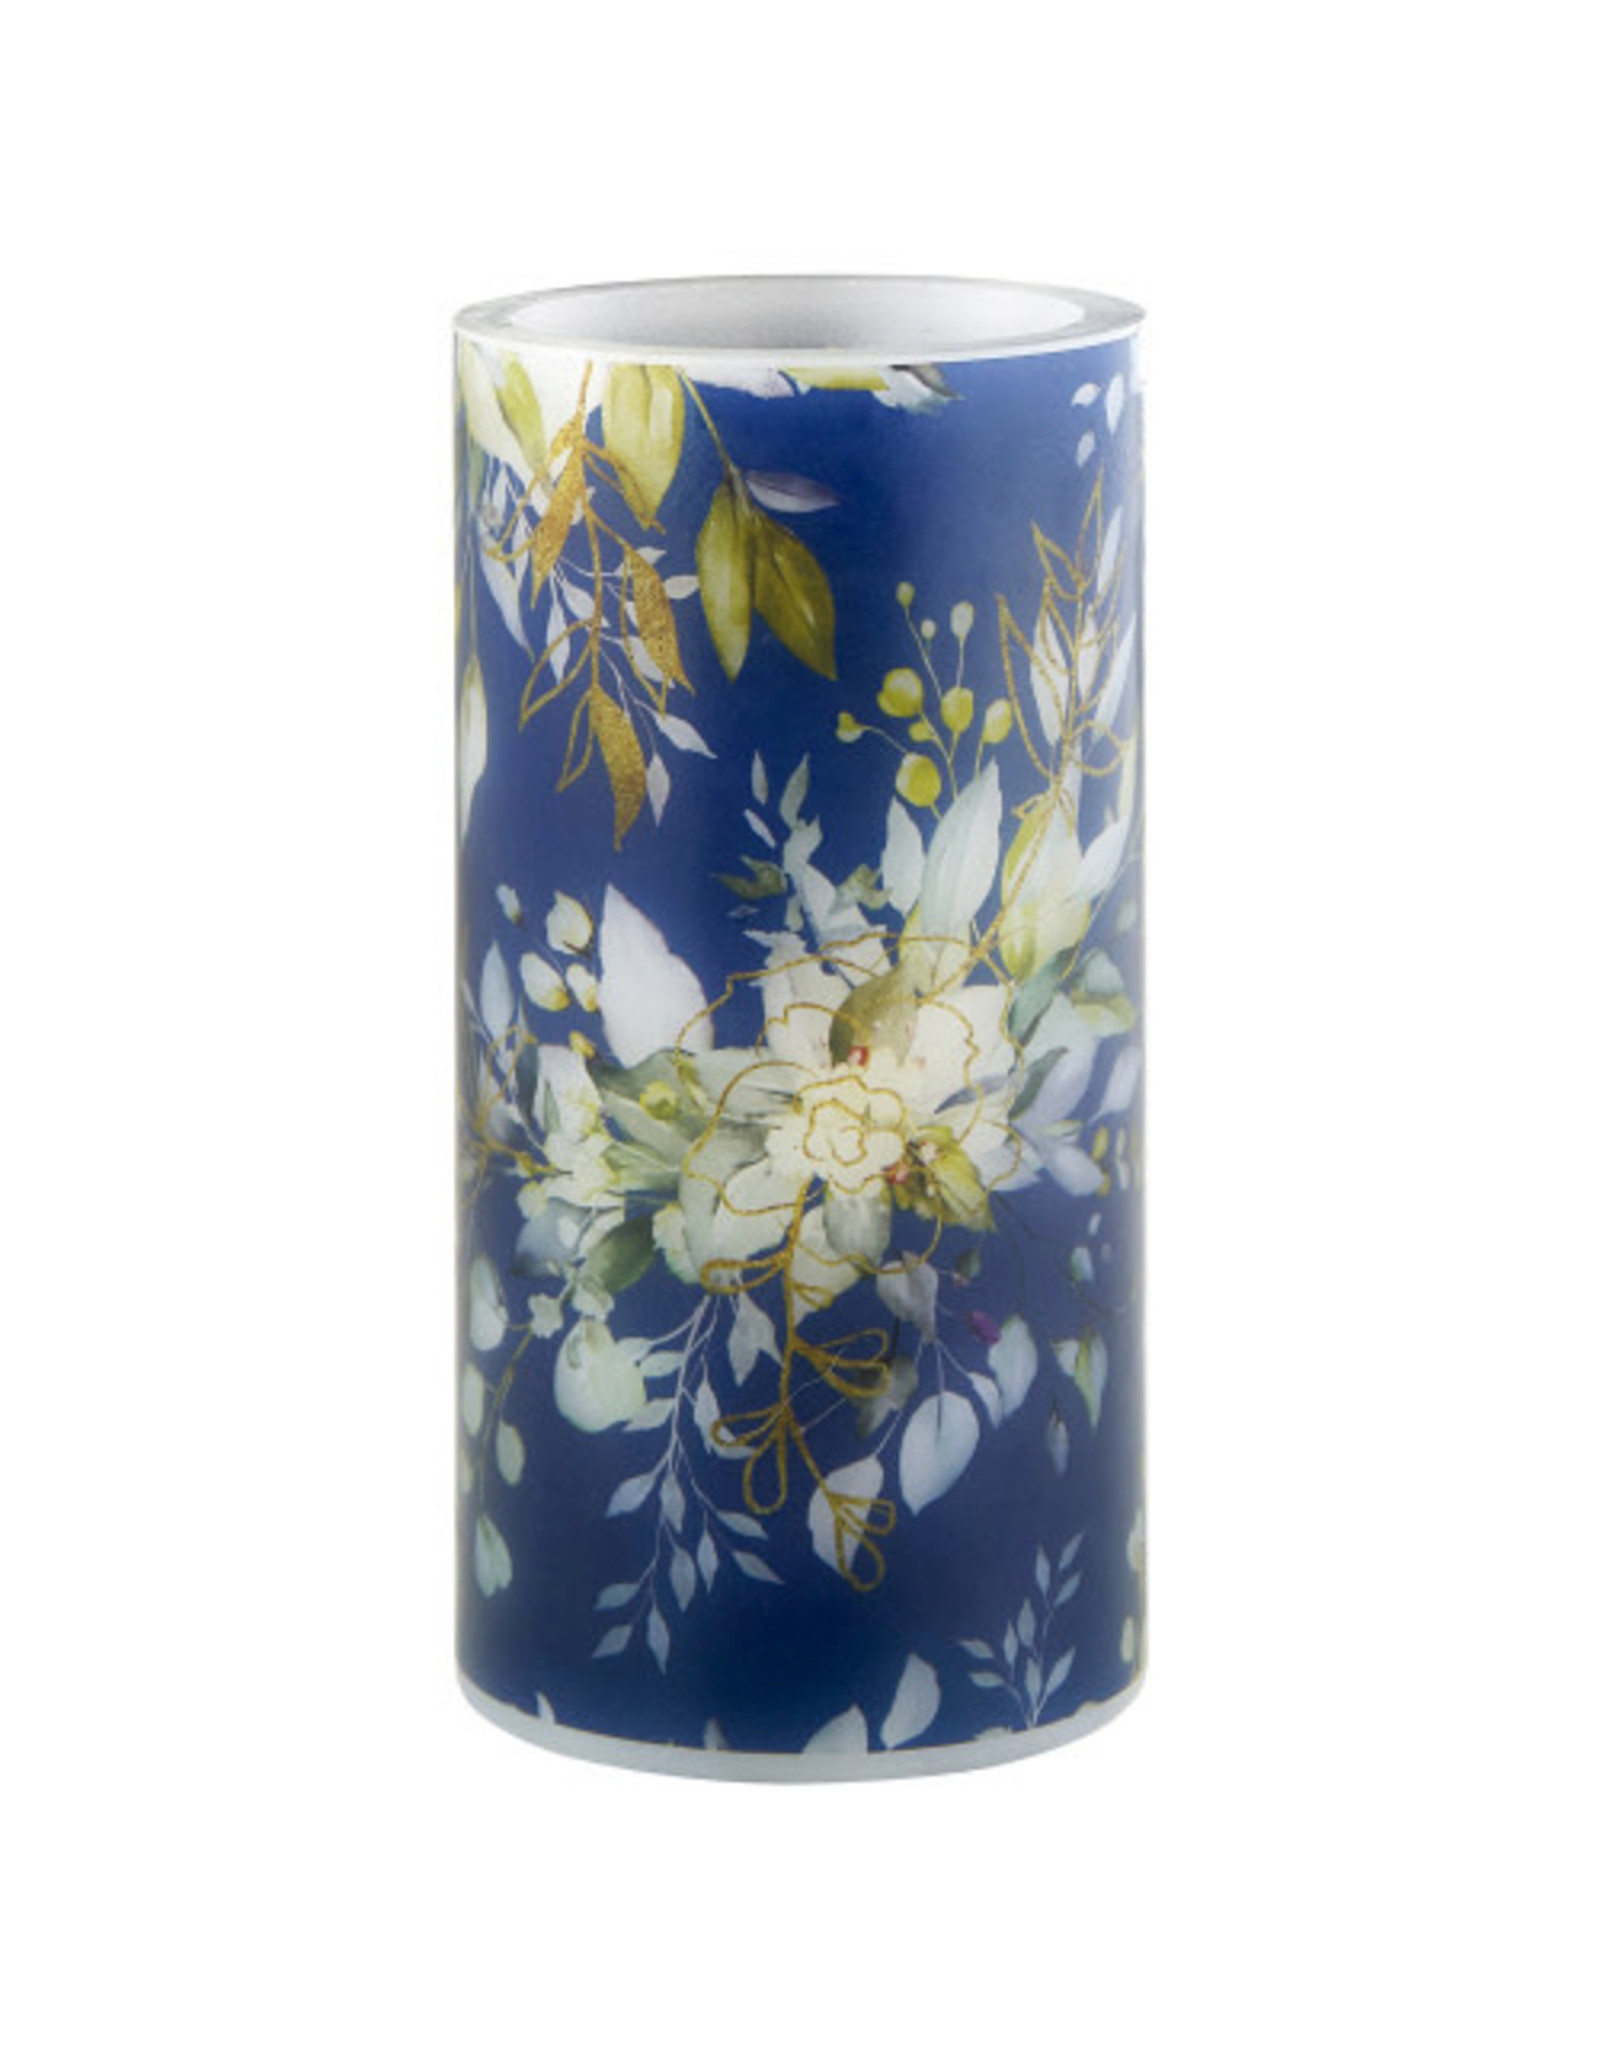 Heartfelt LED Candle, Blue FLoral